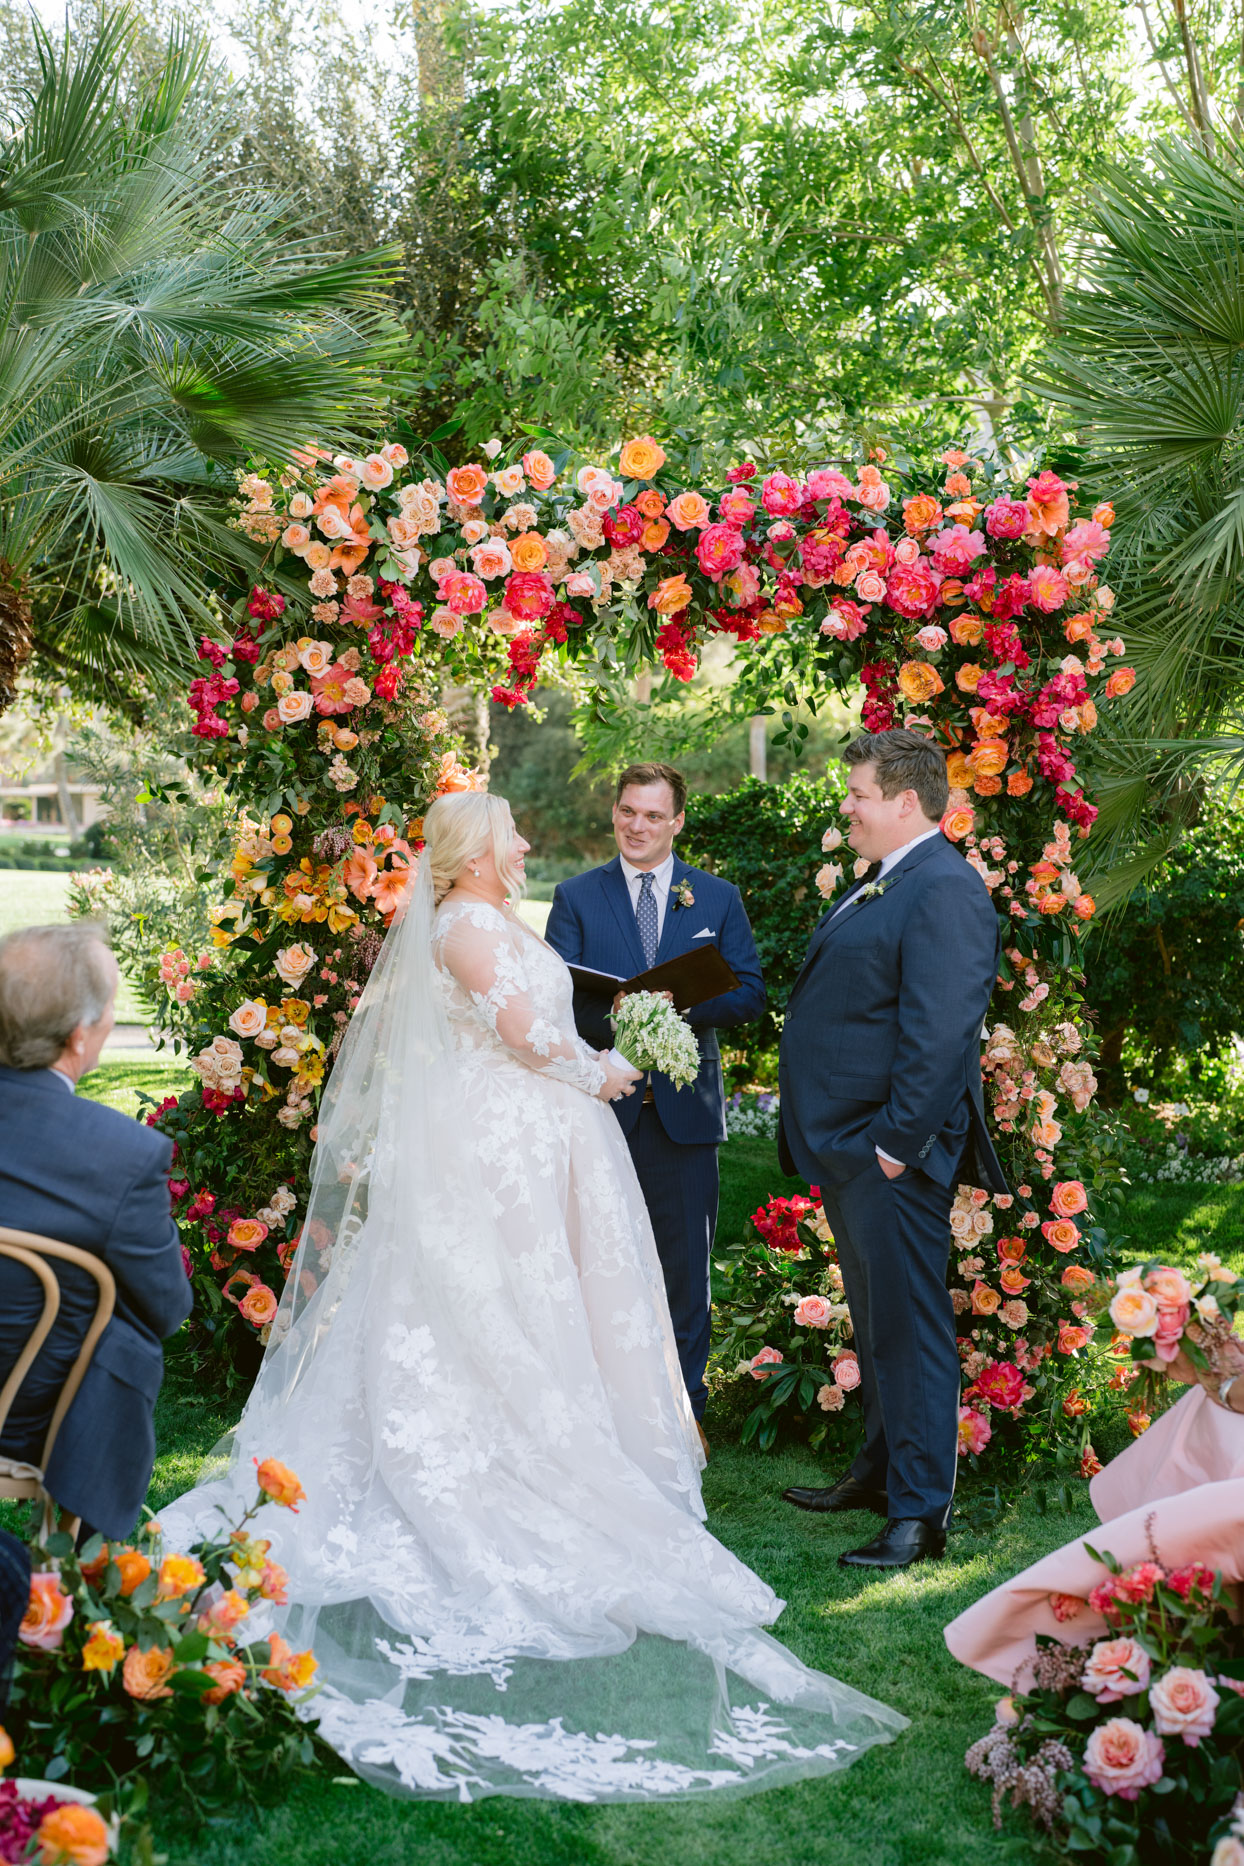 Bride and groom exchanging vows in floral arch